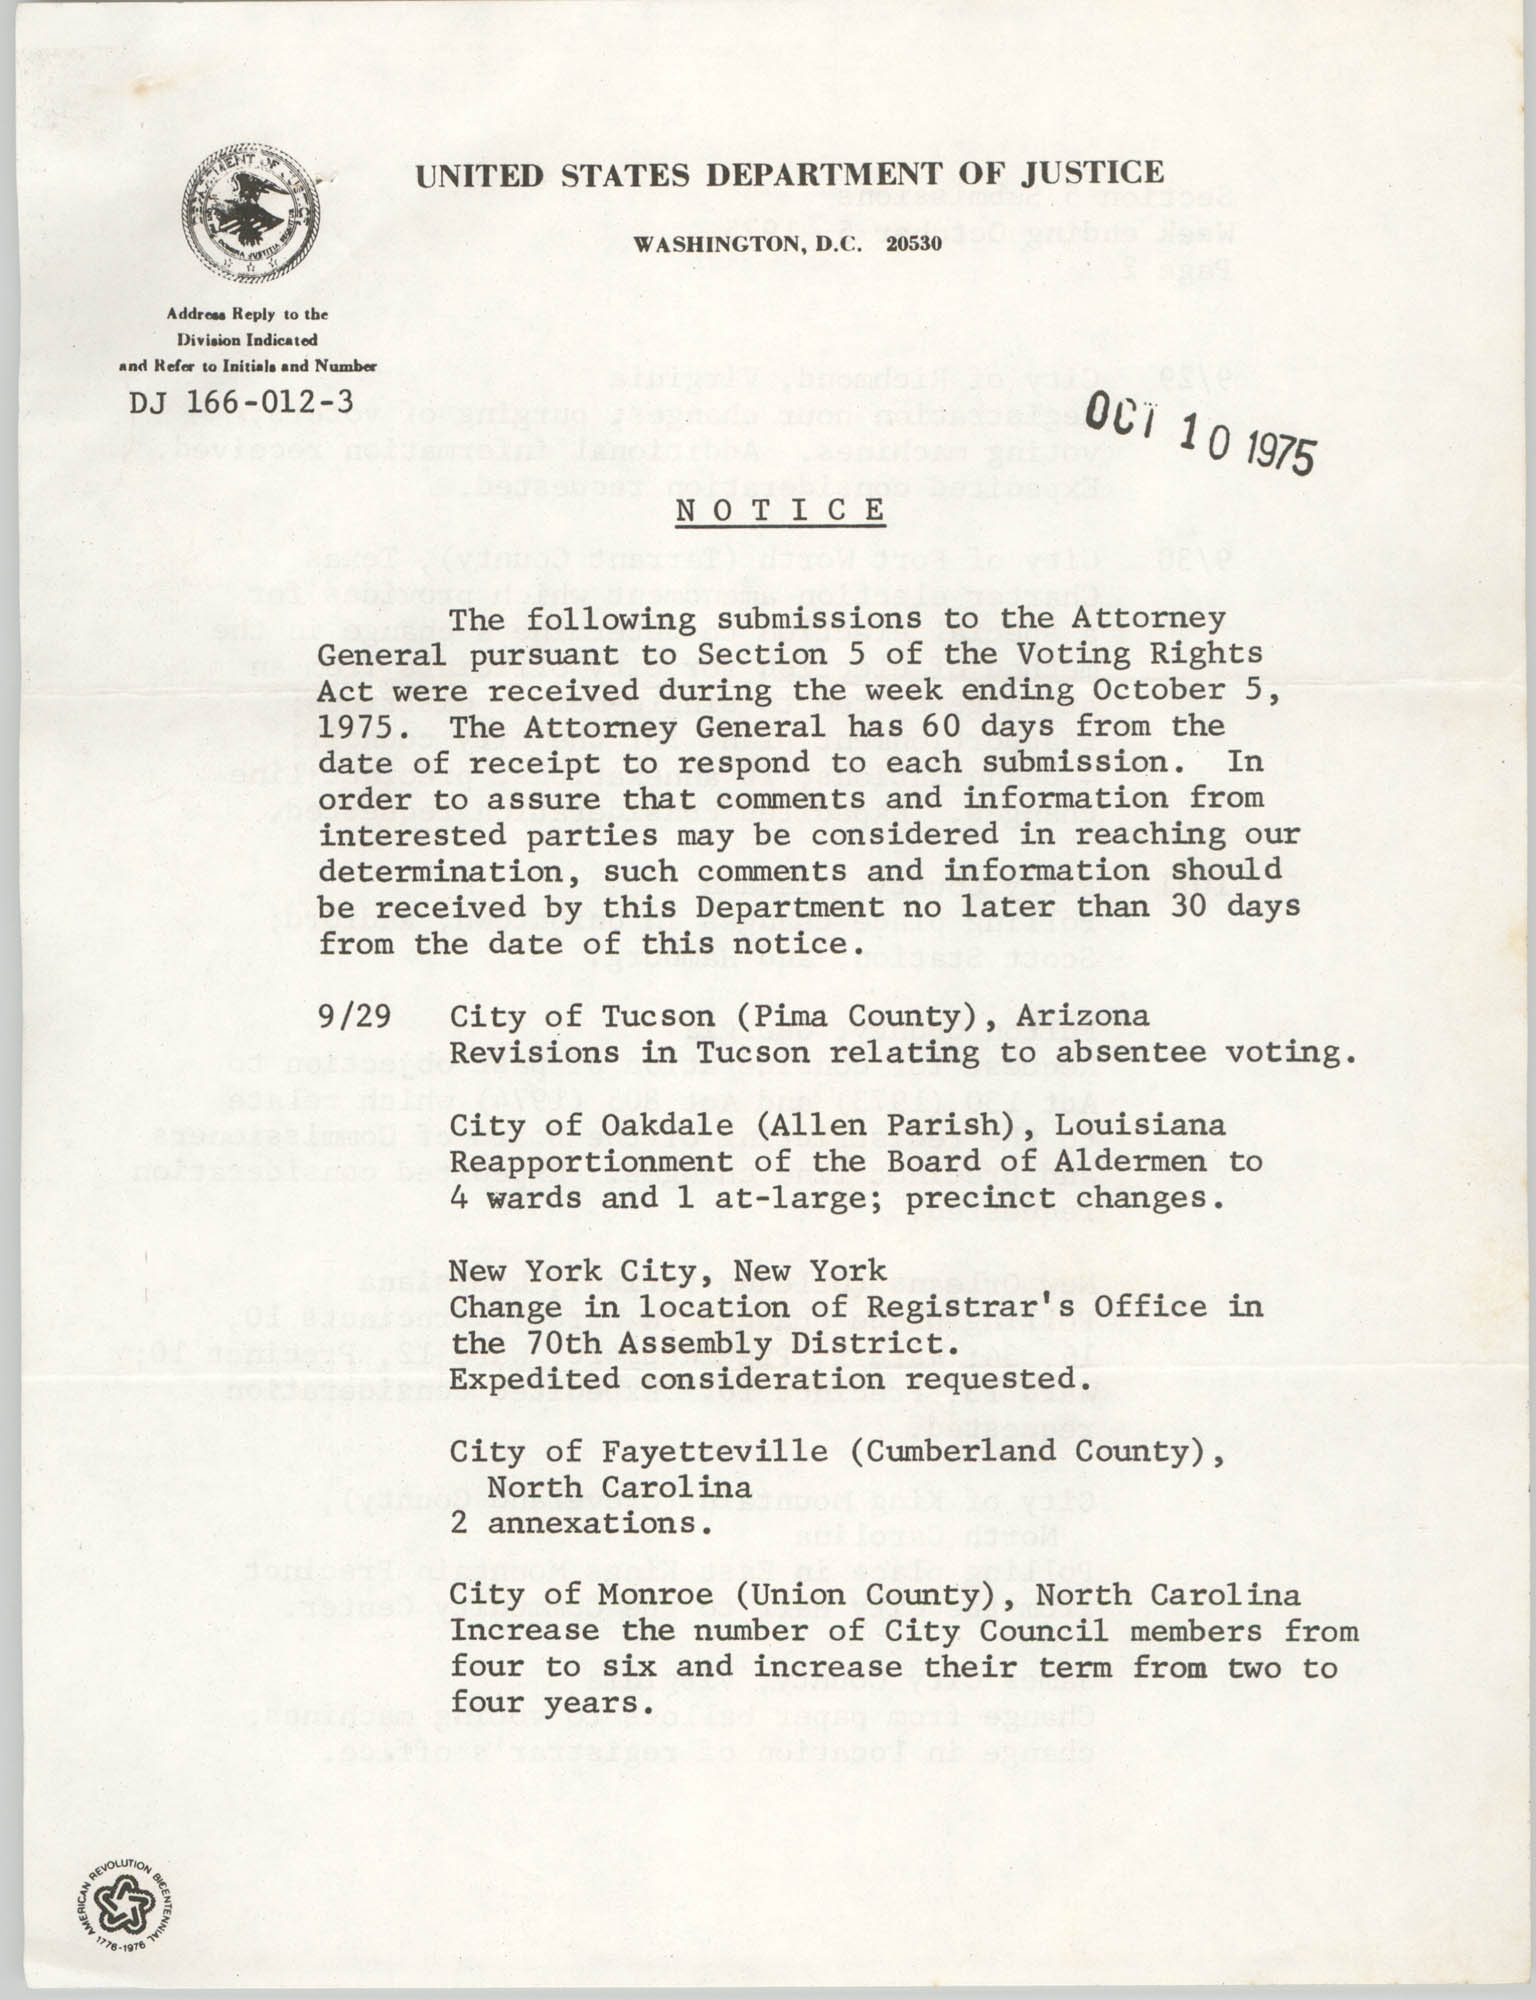 United States Department of Justice Notice, October 10, 1975